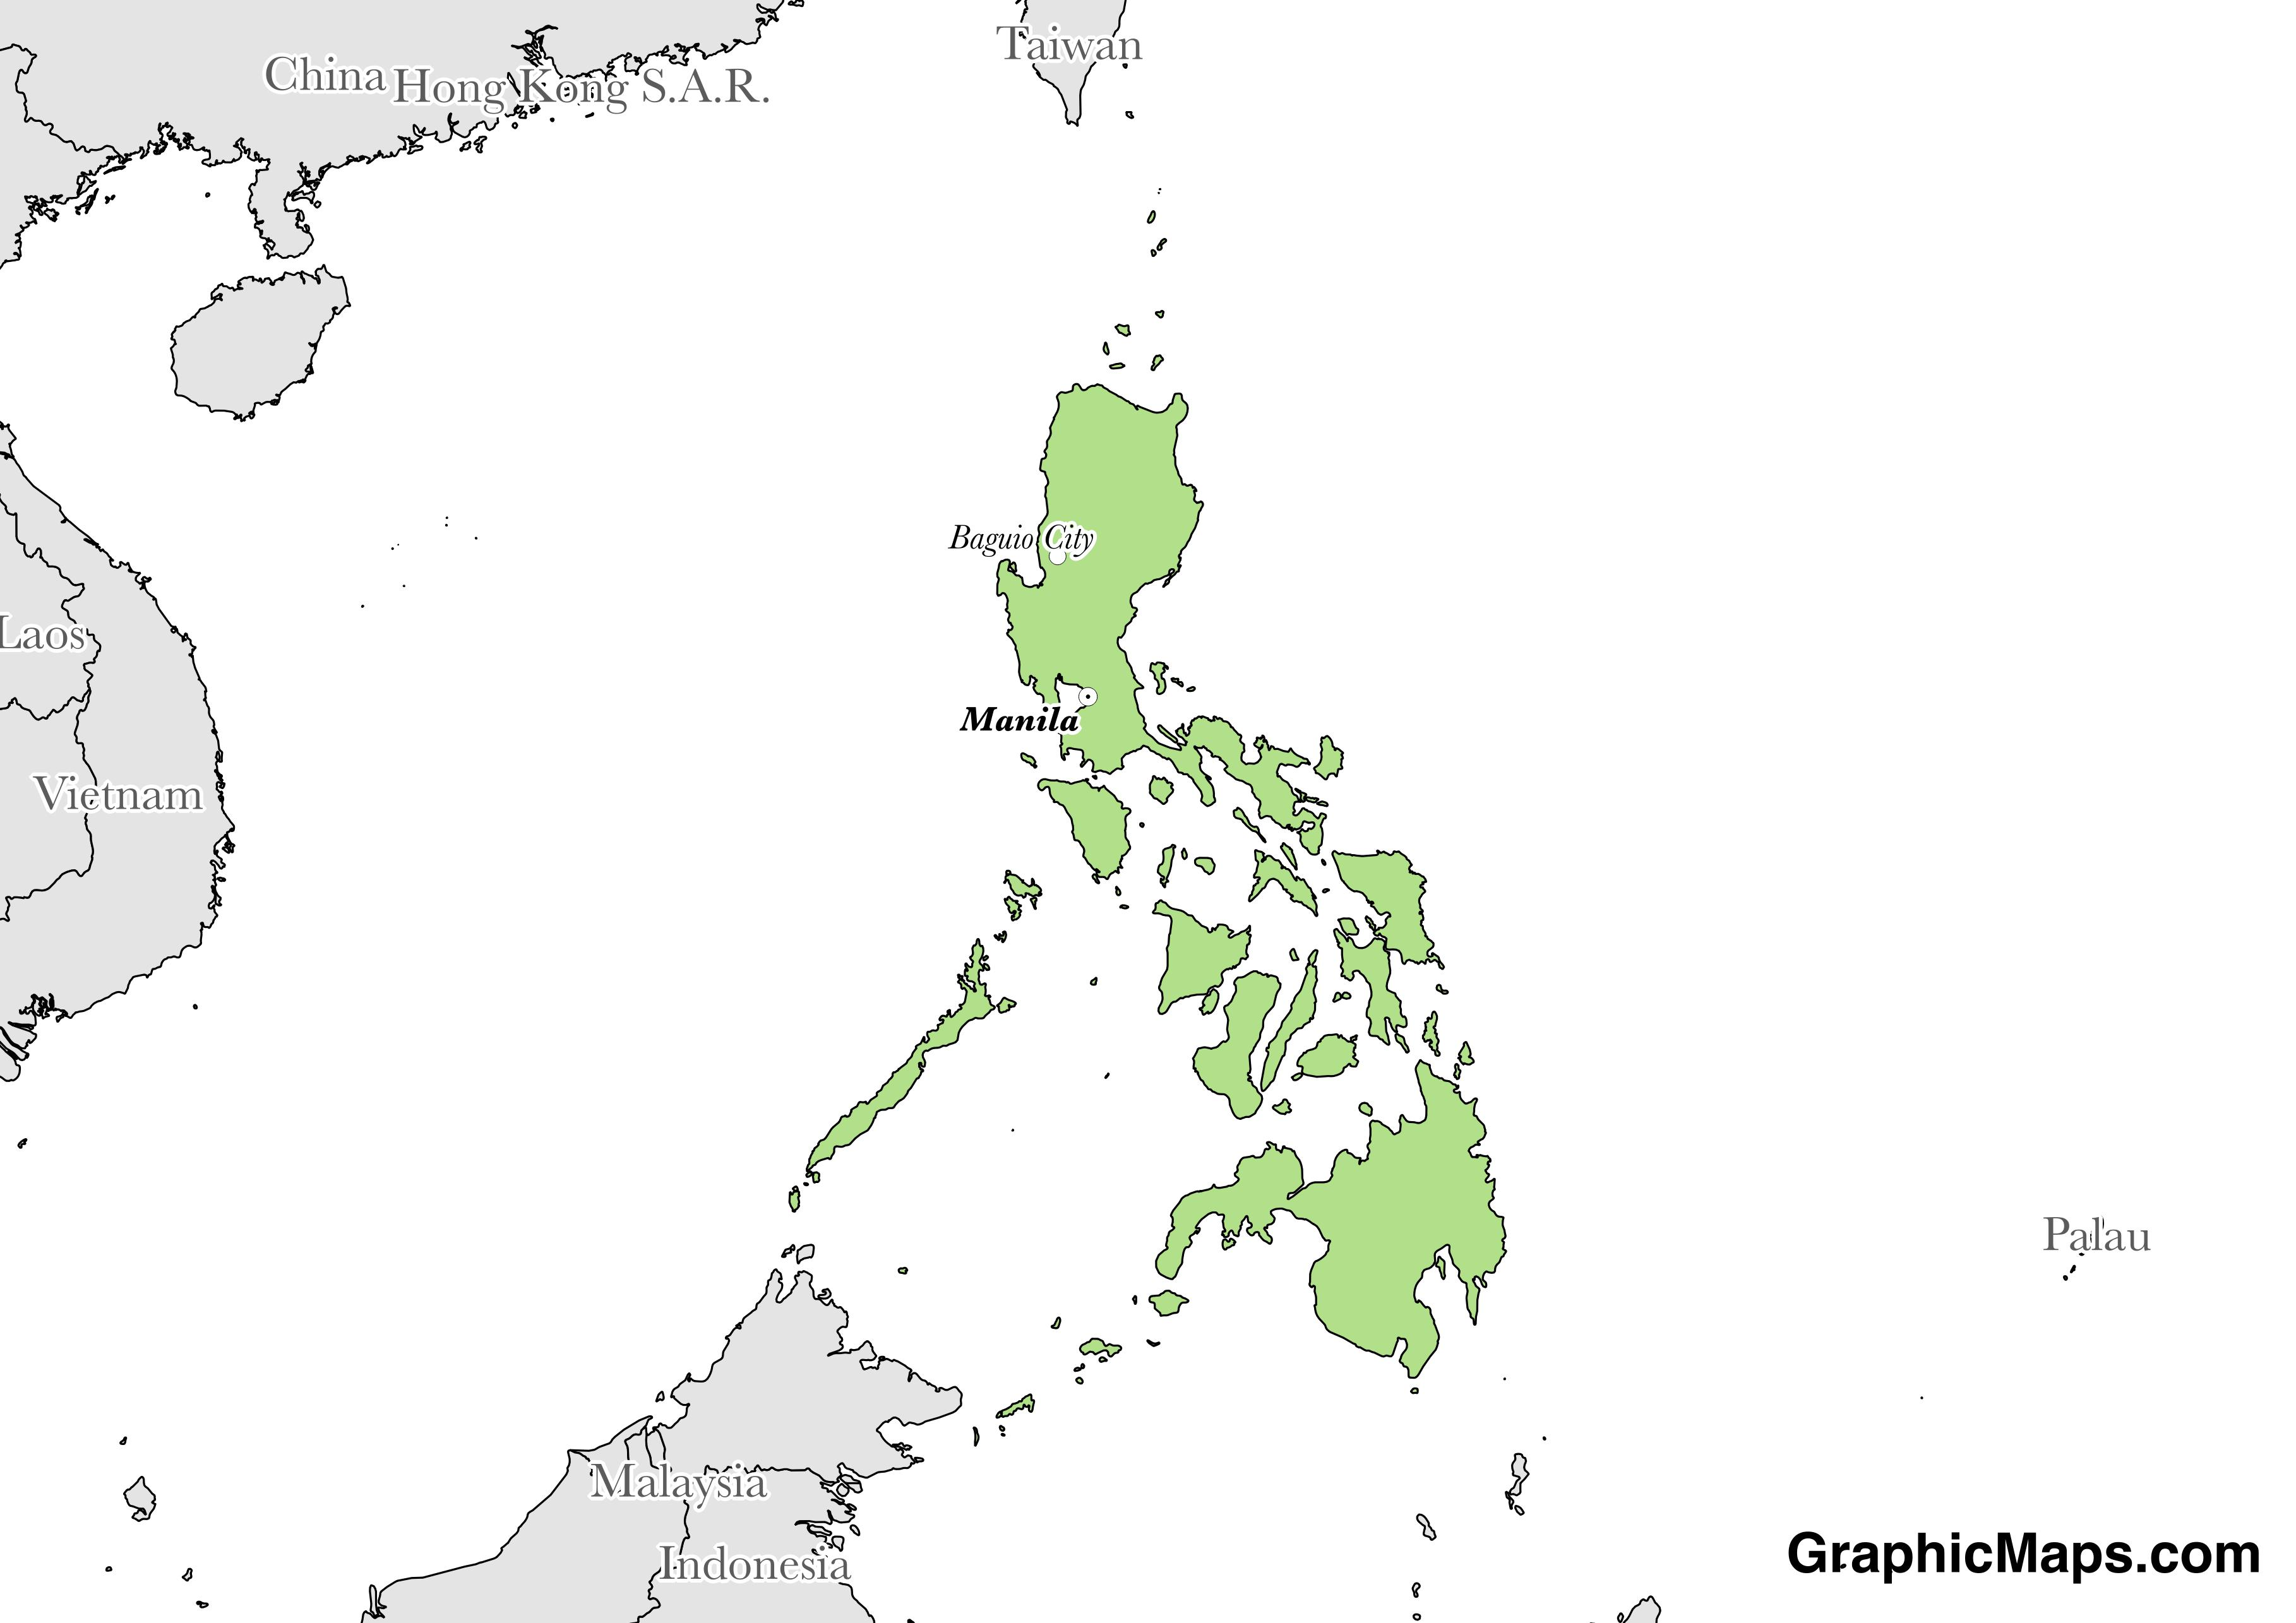 Map showing the location of Philippines